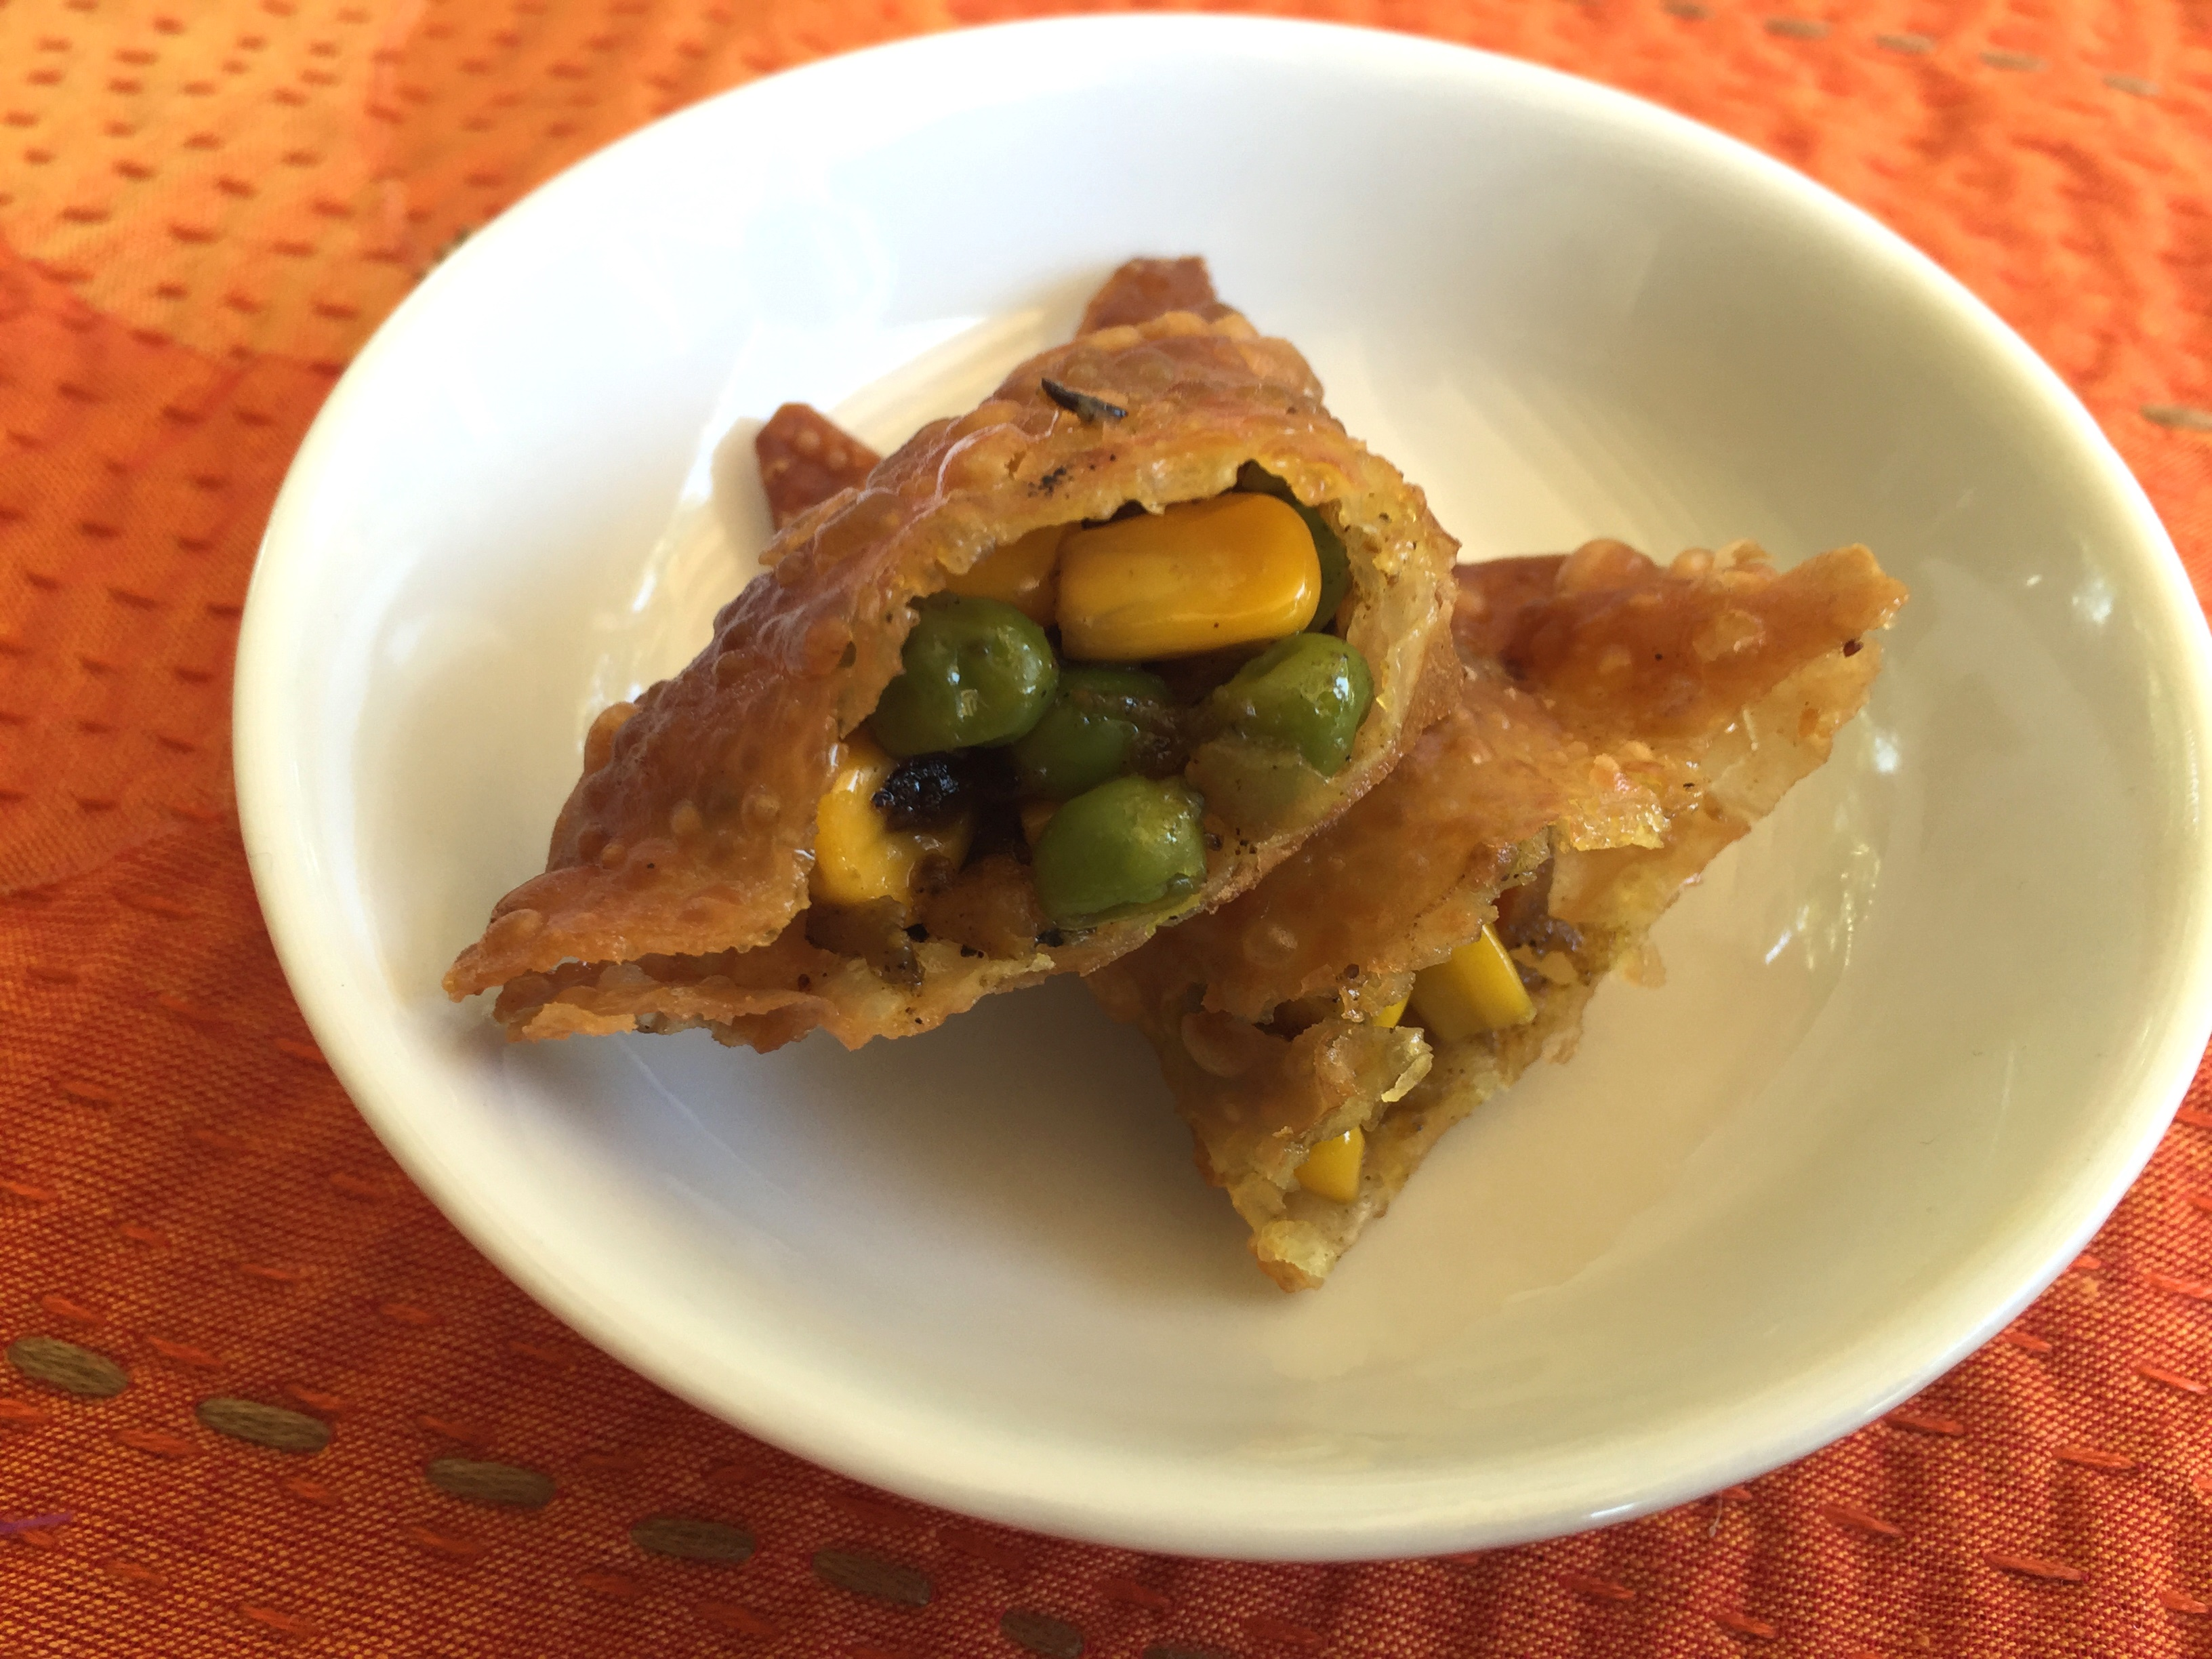 Cape Malay Samosas